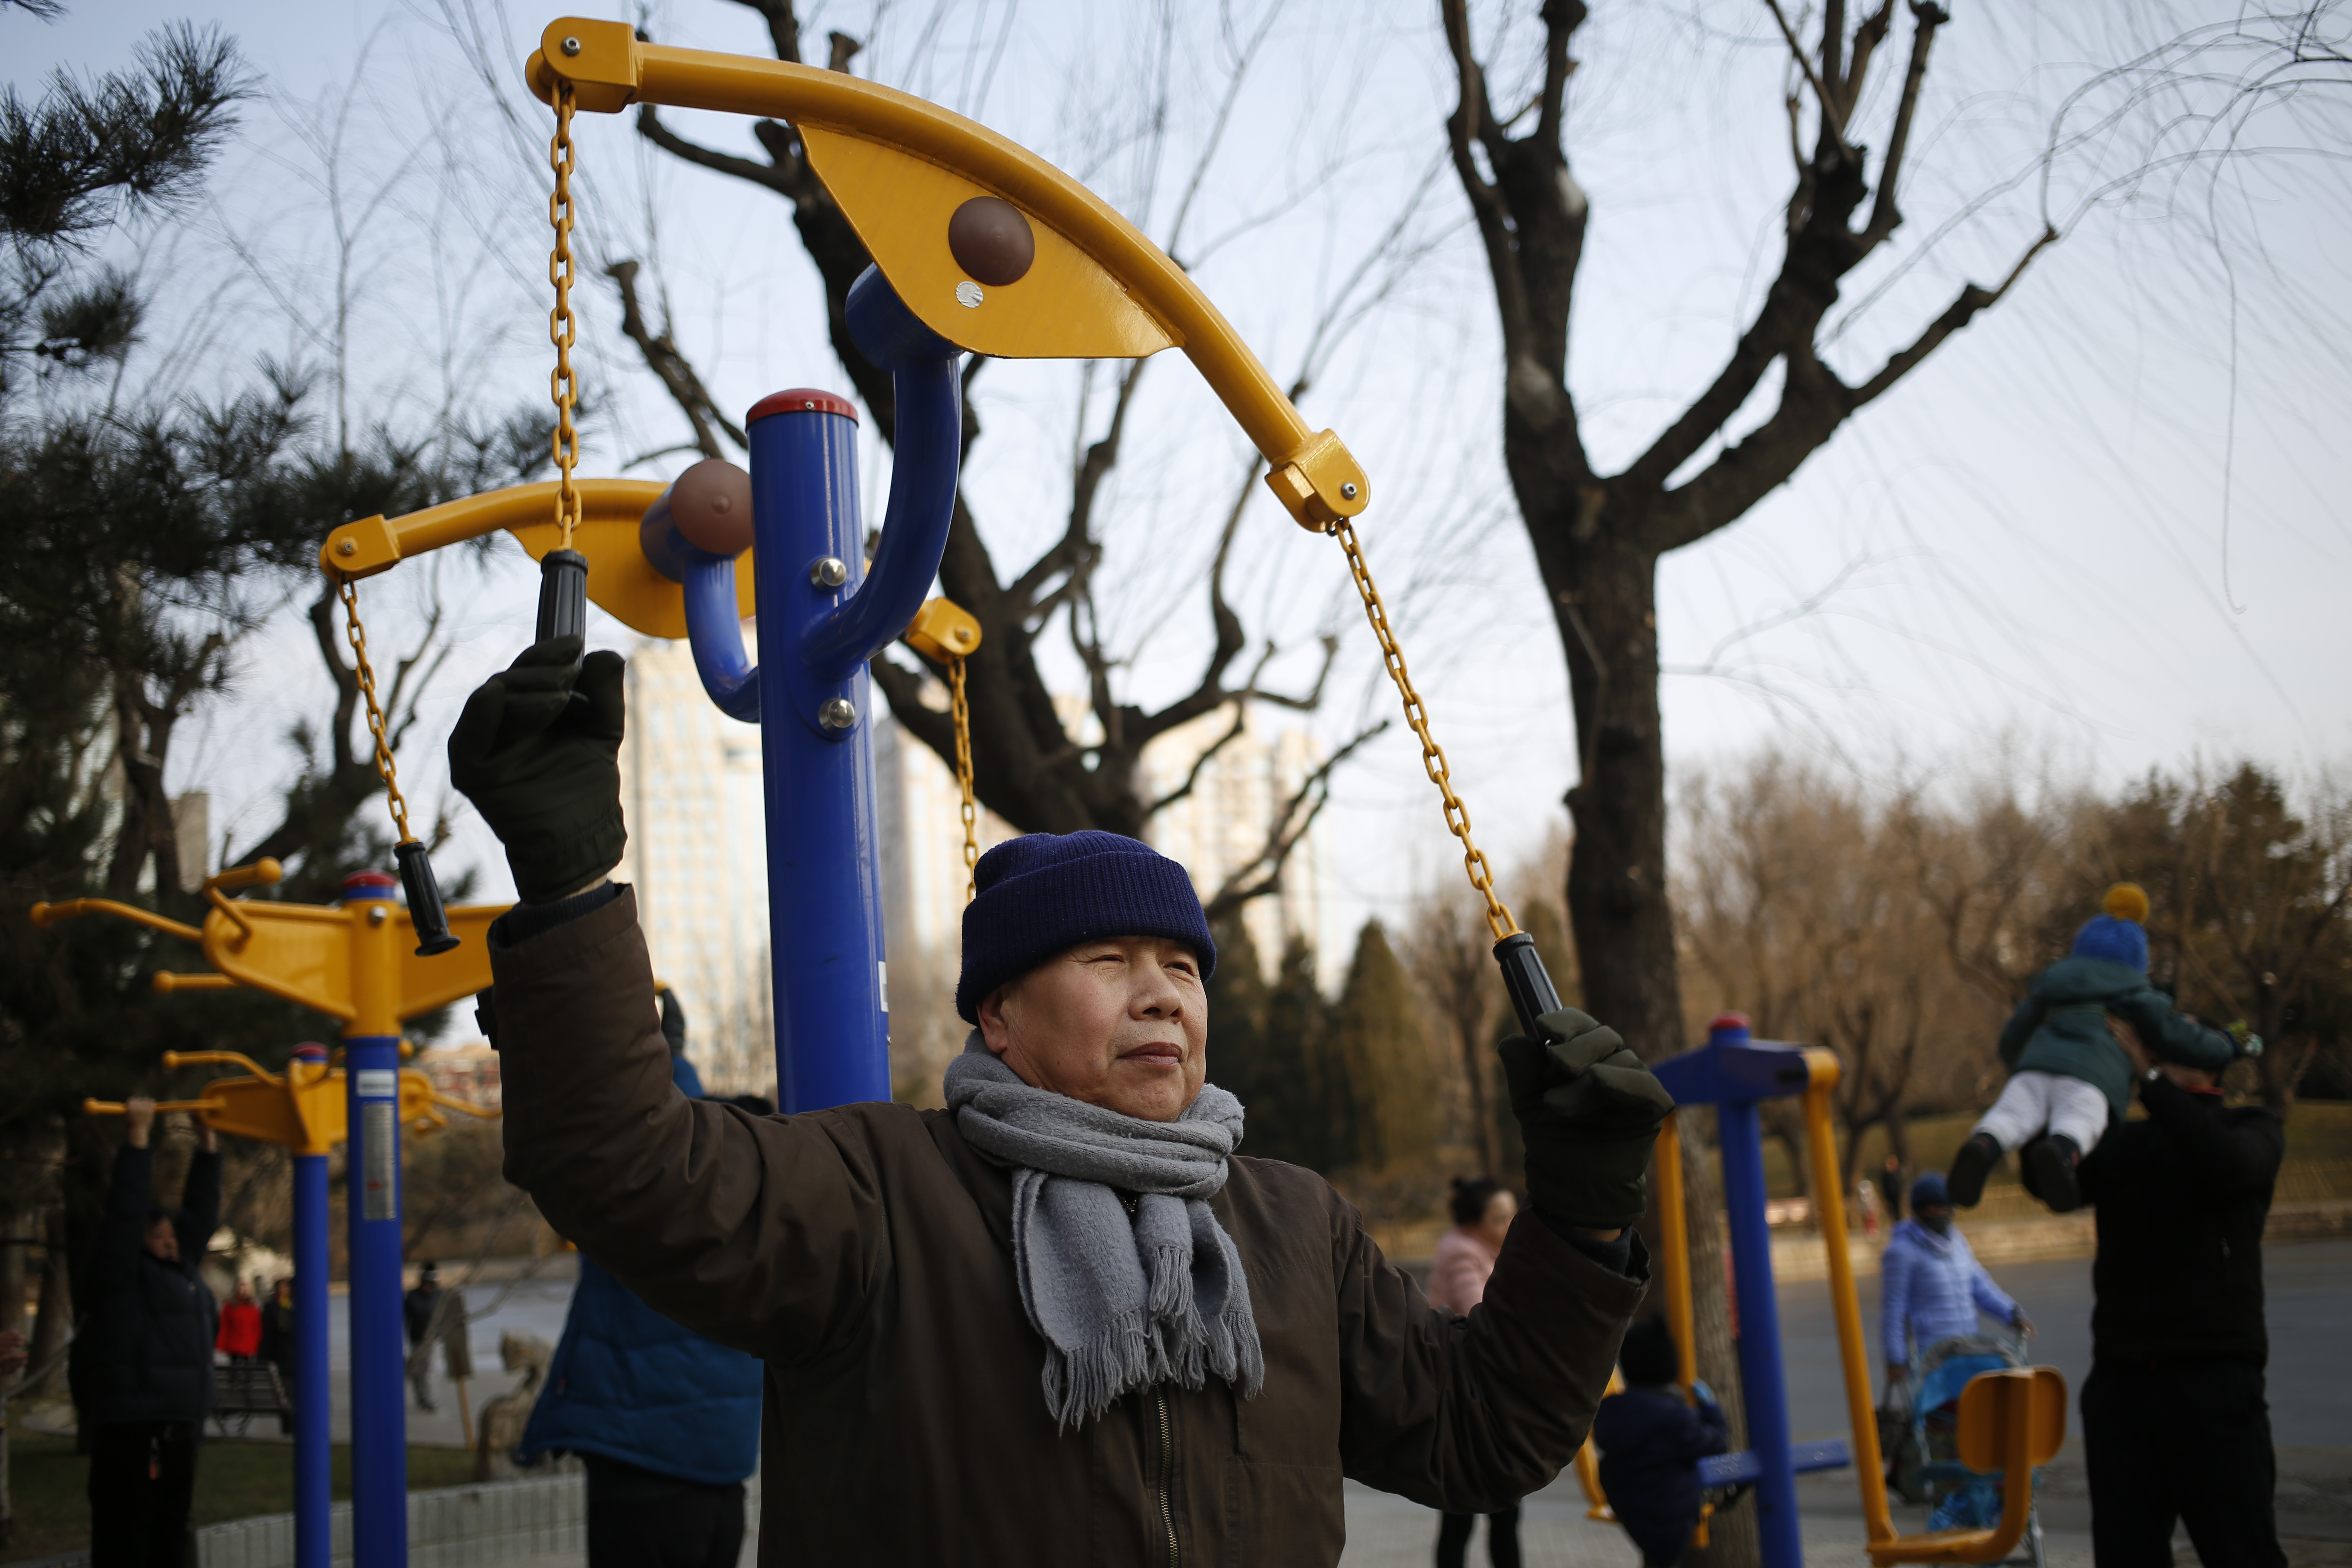 A Chinese elderly man exercising in a park on a clear day after the end of a long orange alert for smog in Beijing, China, 08 January 2017. People came out in droves to enjoy clean air and clear skies in Beijing after the end of an orange alert for heavy air pollution which lasted seven days, beginning on 02 January 2017. EPA/HOW HWEE YOUNG